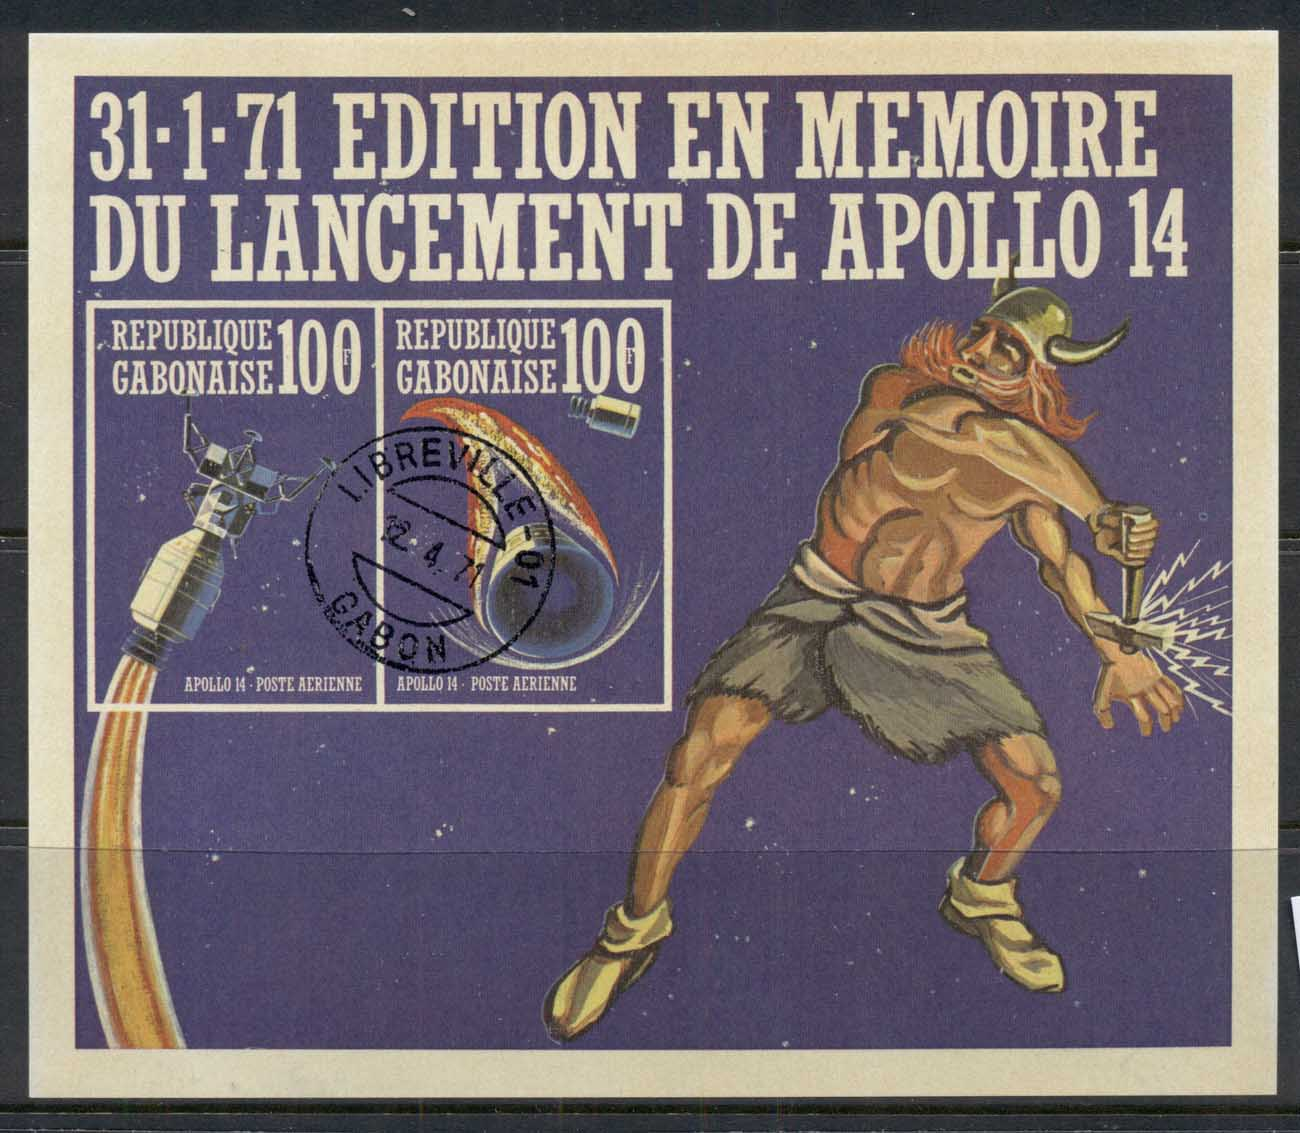 Gabon 1971 Apollo 14 Space Mission IMPERF MS CTO